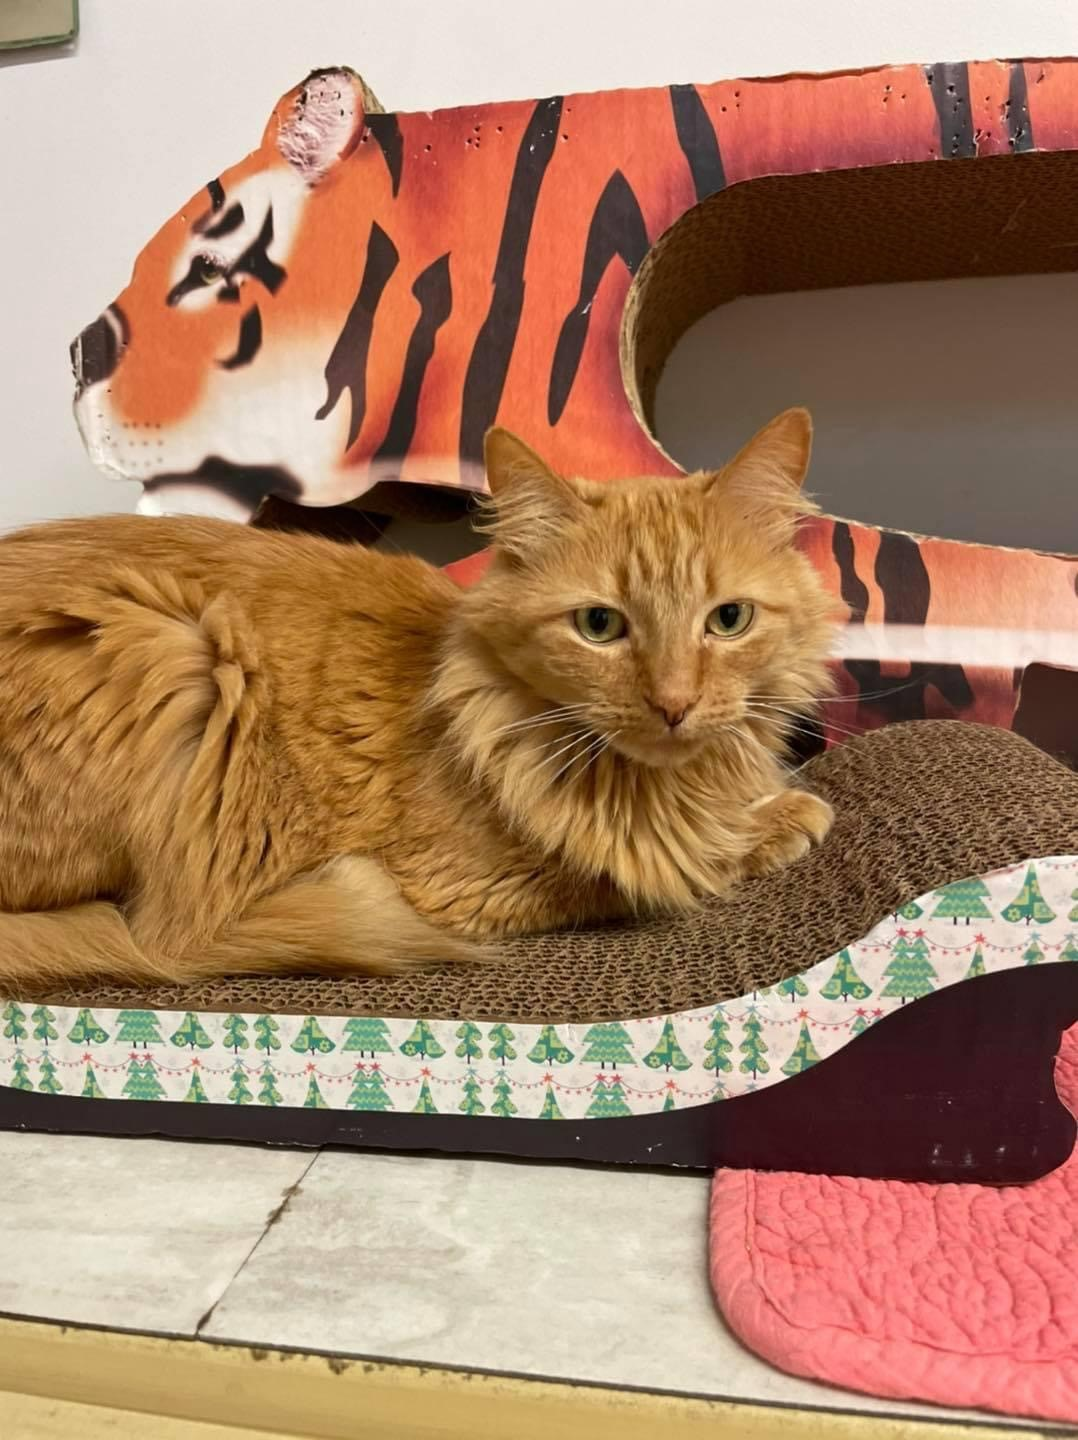 A long haired orange cat sitting on a cat bed.